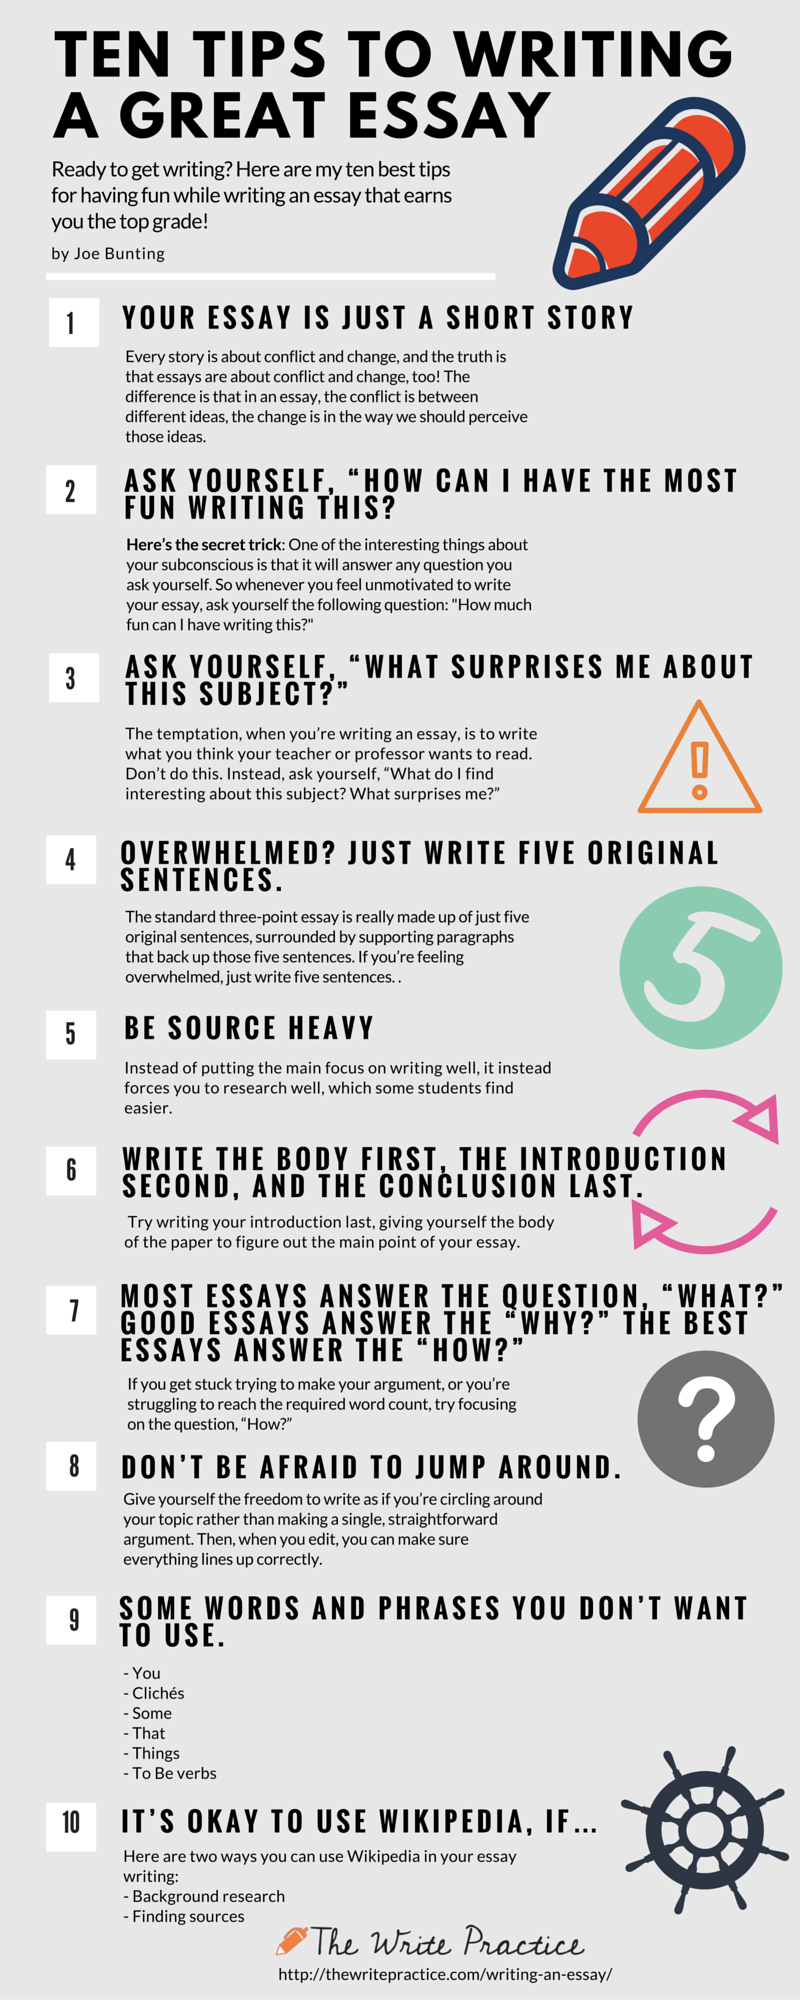 002 How To Start Writing An Essay Example Tips For Awful Write Argumentative Step By Ppt Middle School University Opinion 4th Grade Full